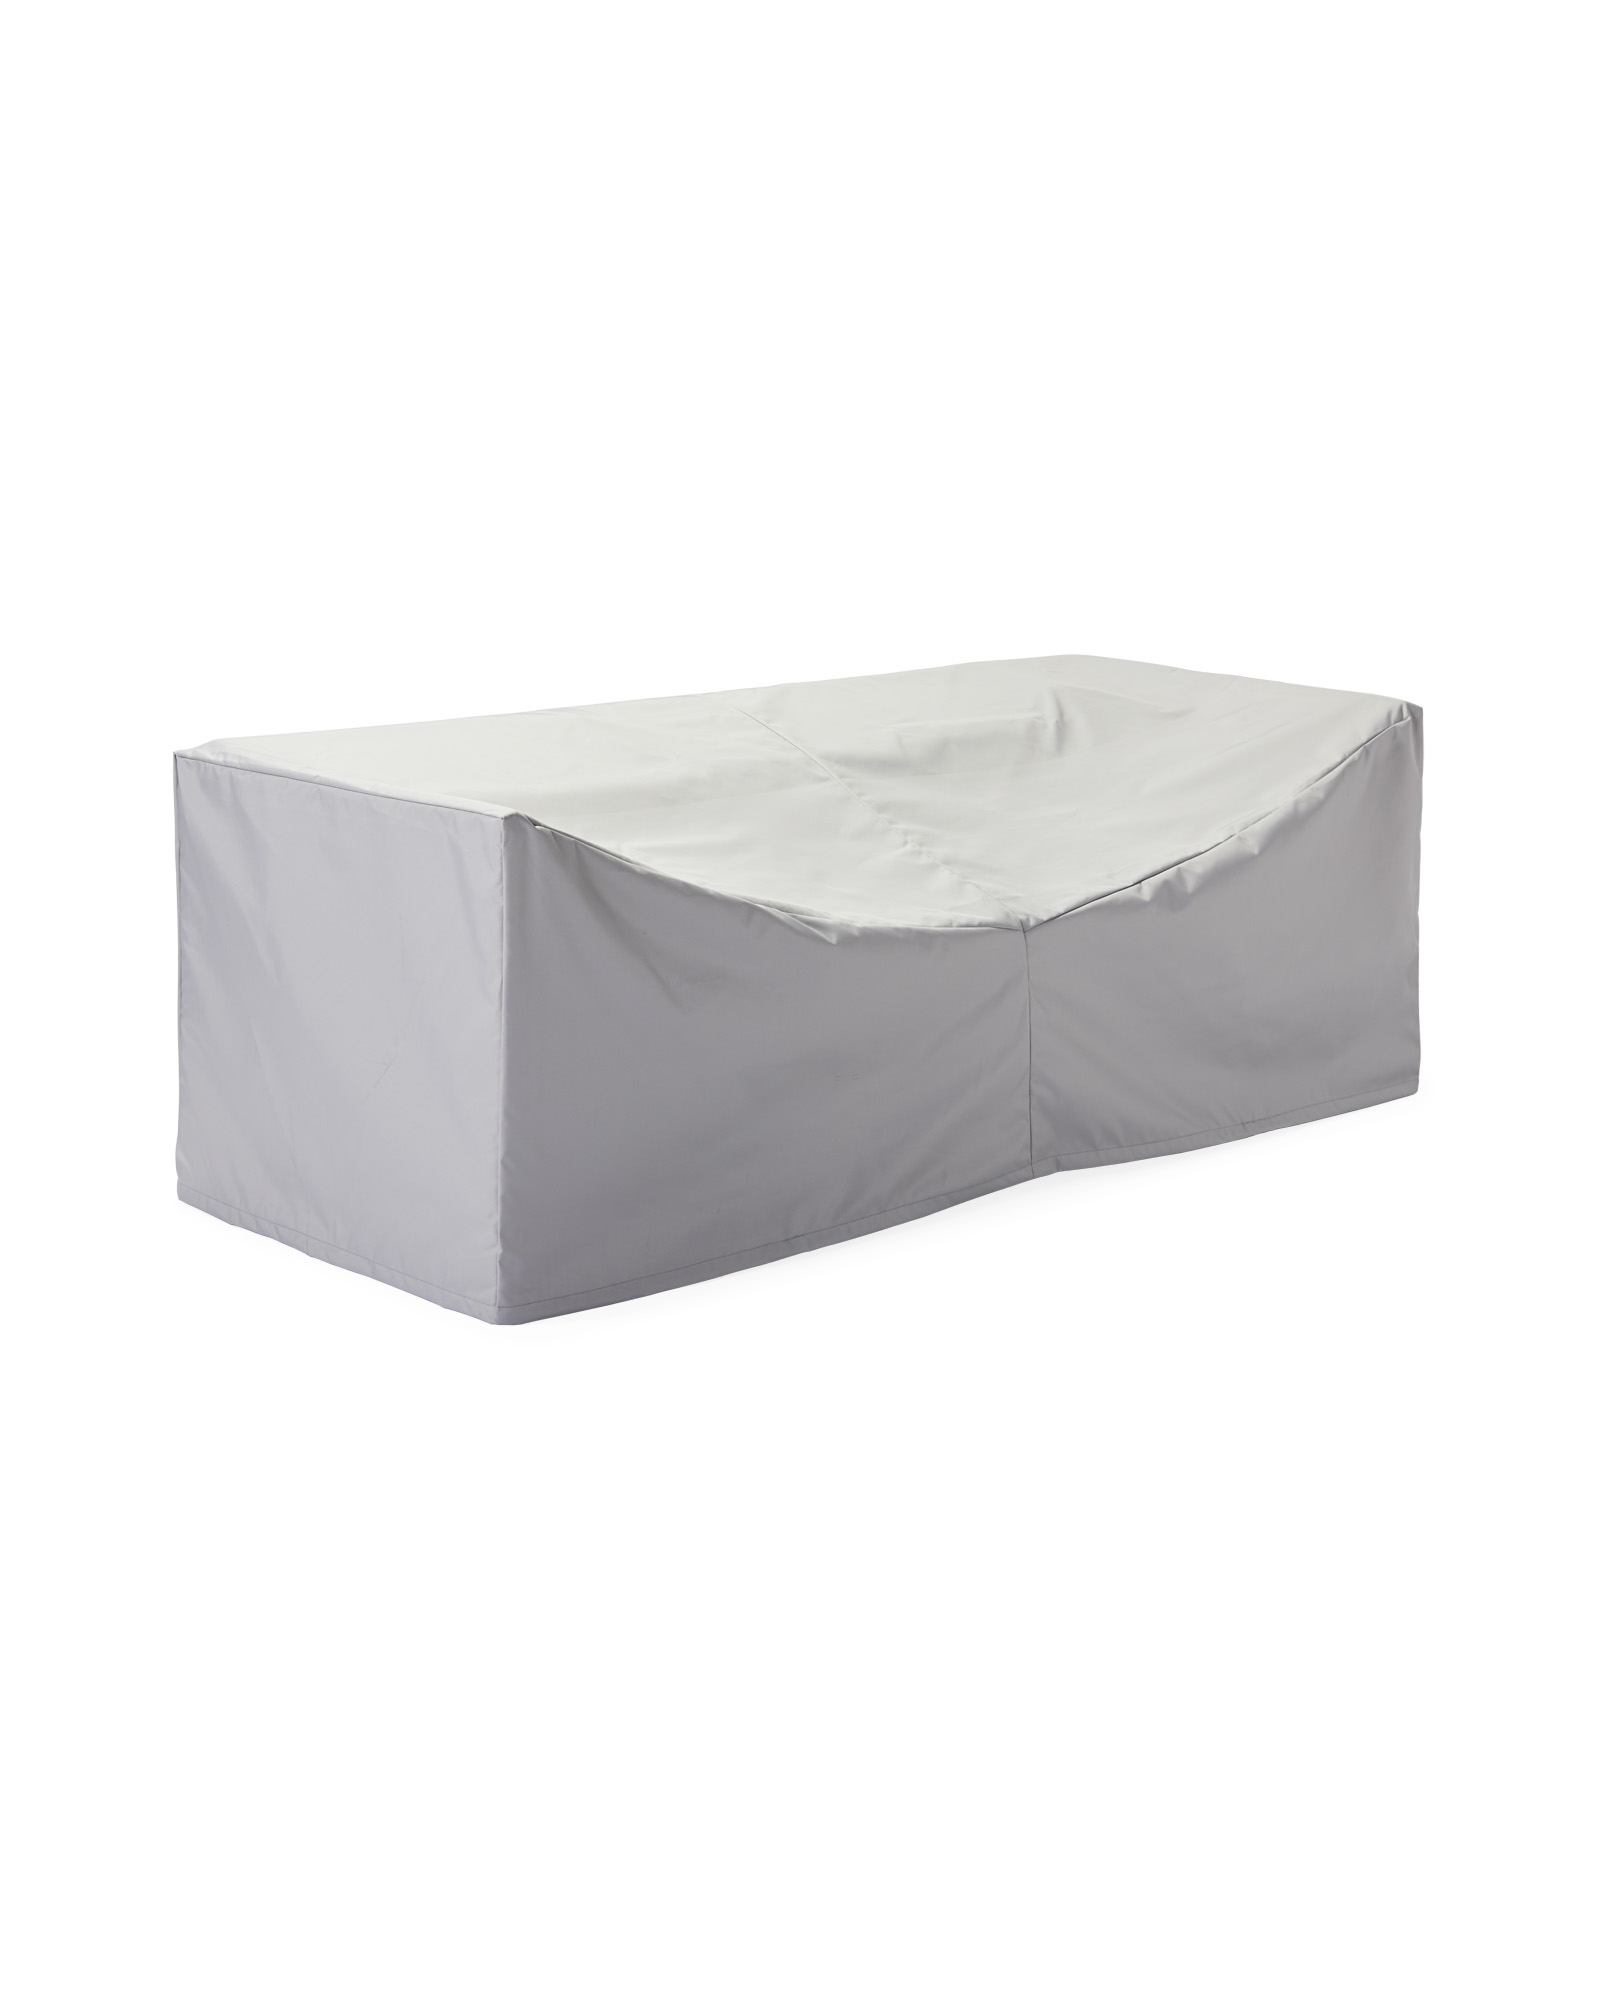 Protective Cover - Pacifica Sofa,